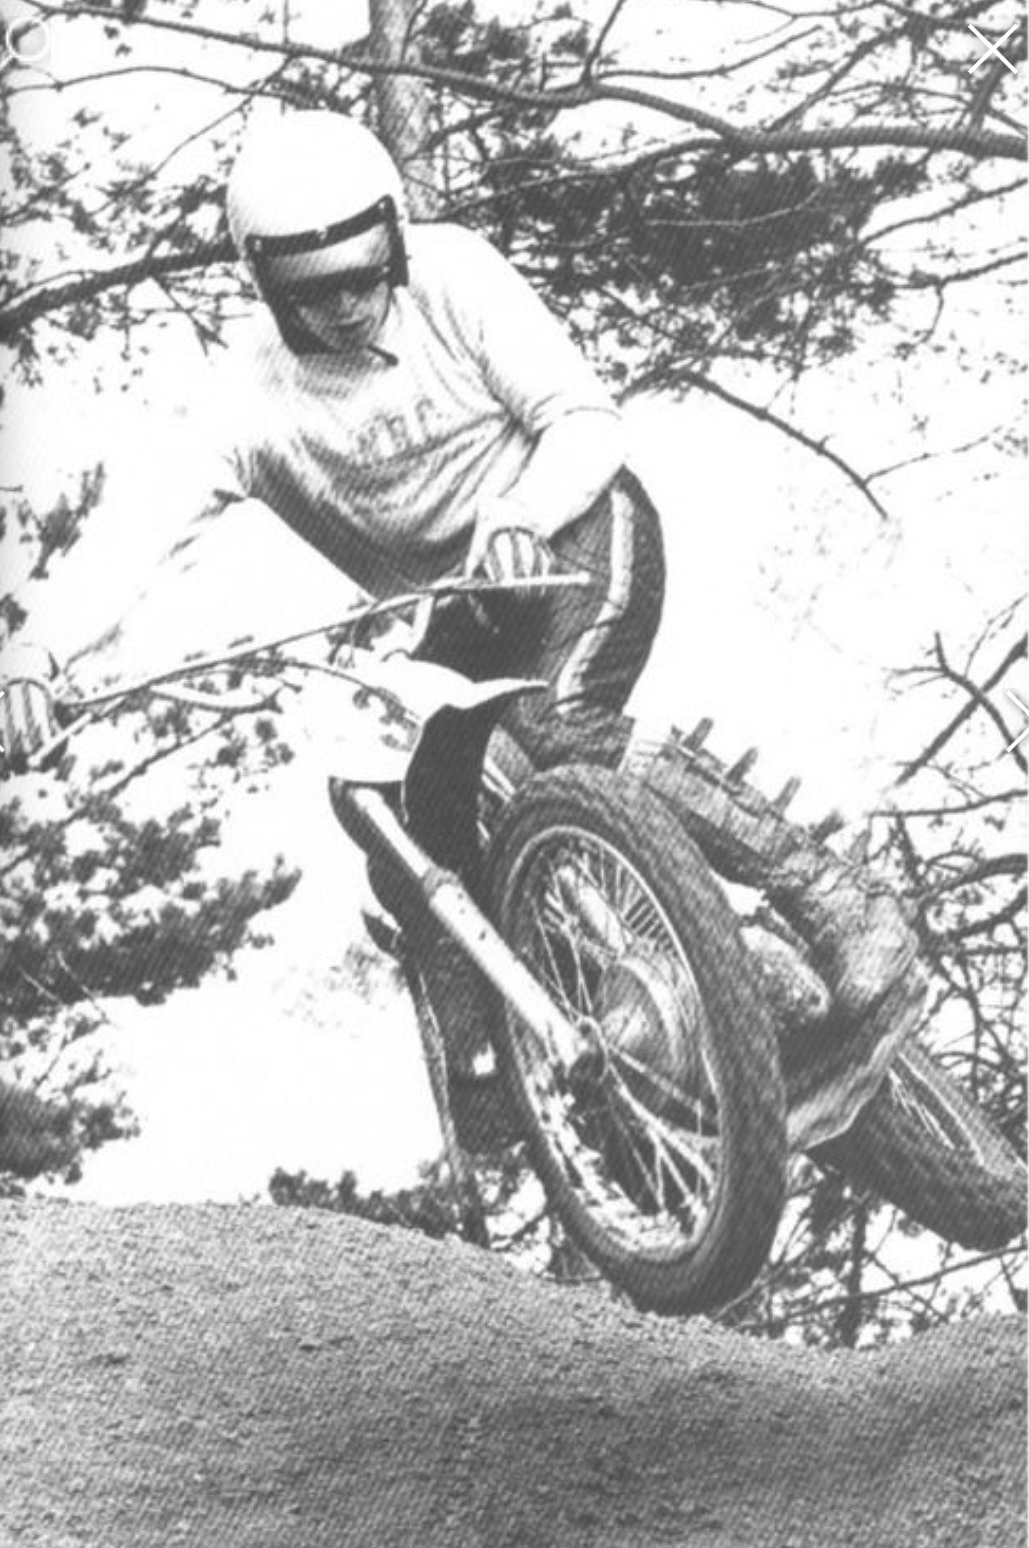 the weekly feed everything cz wild videos and social pokes dirt Honda CL350 roger decoster started his career racing for cz in 1966 the cz was at the top of the food chain by 1969 with its main petition ing from two other